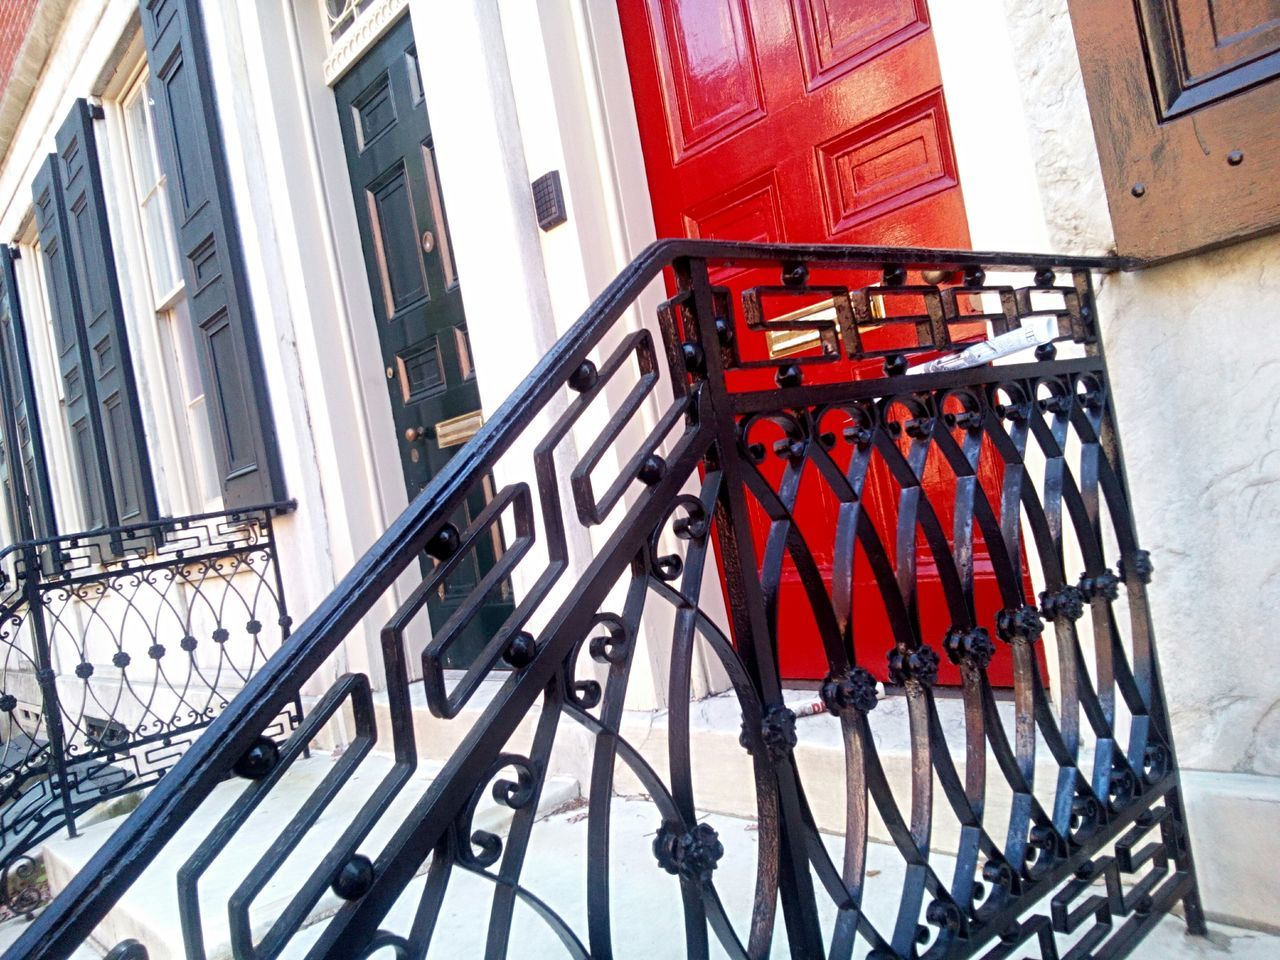 railing, architecture, built structure, staircase, red, steps, no people, residential building, building exterior, day, outdoors